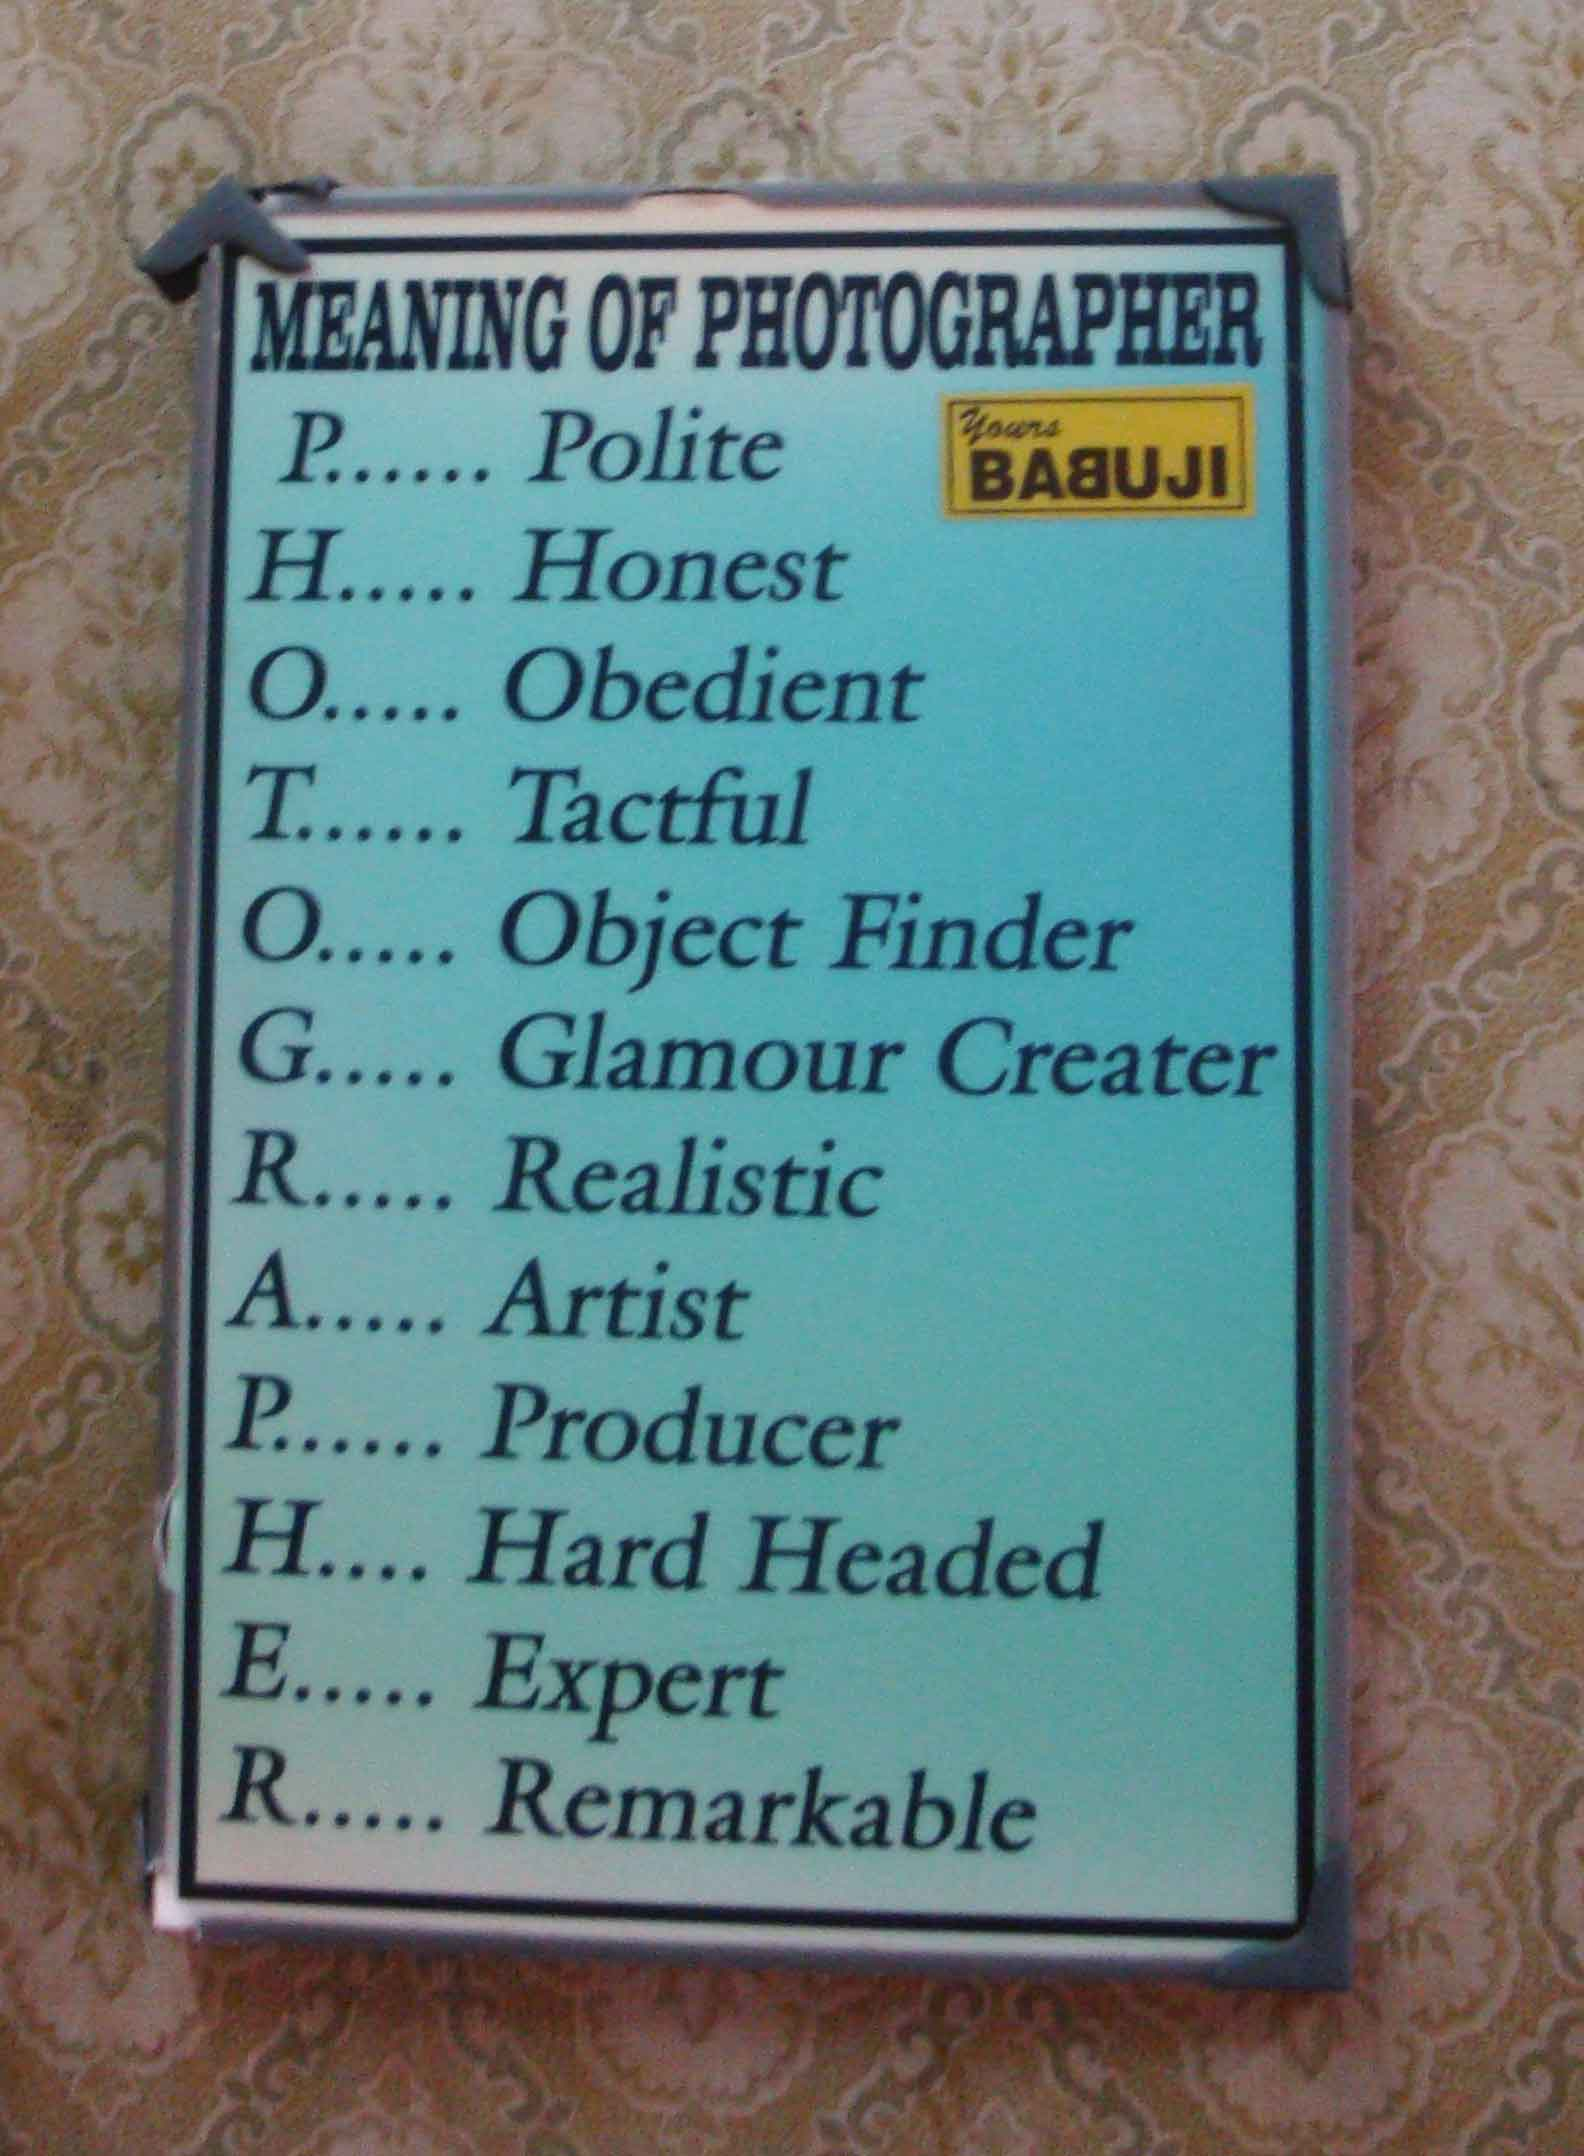 Meaning of Photographer